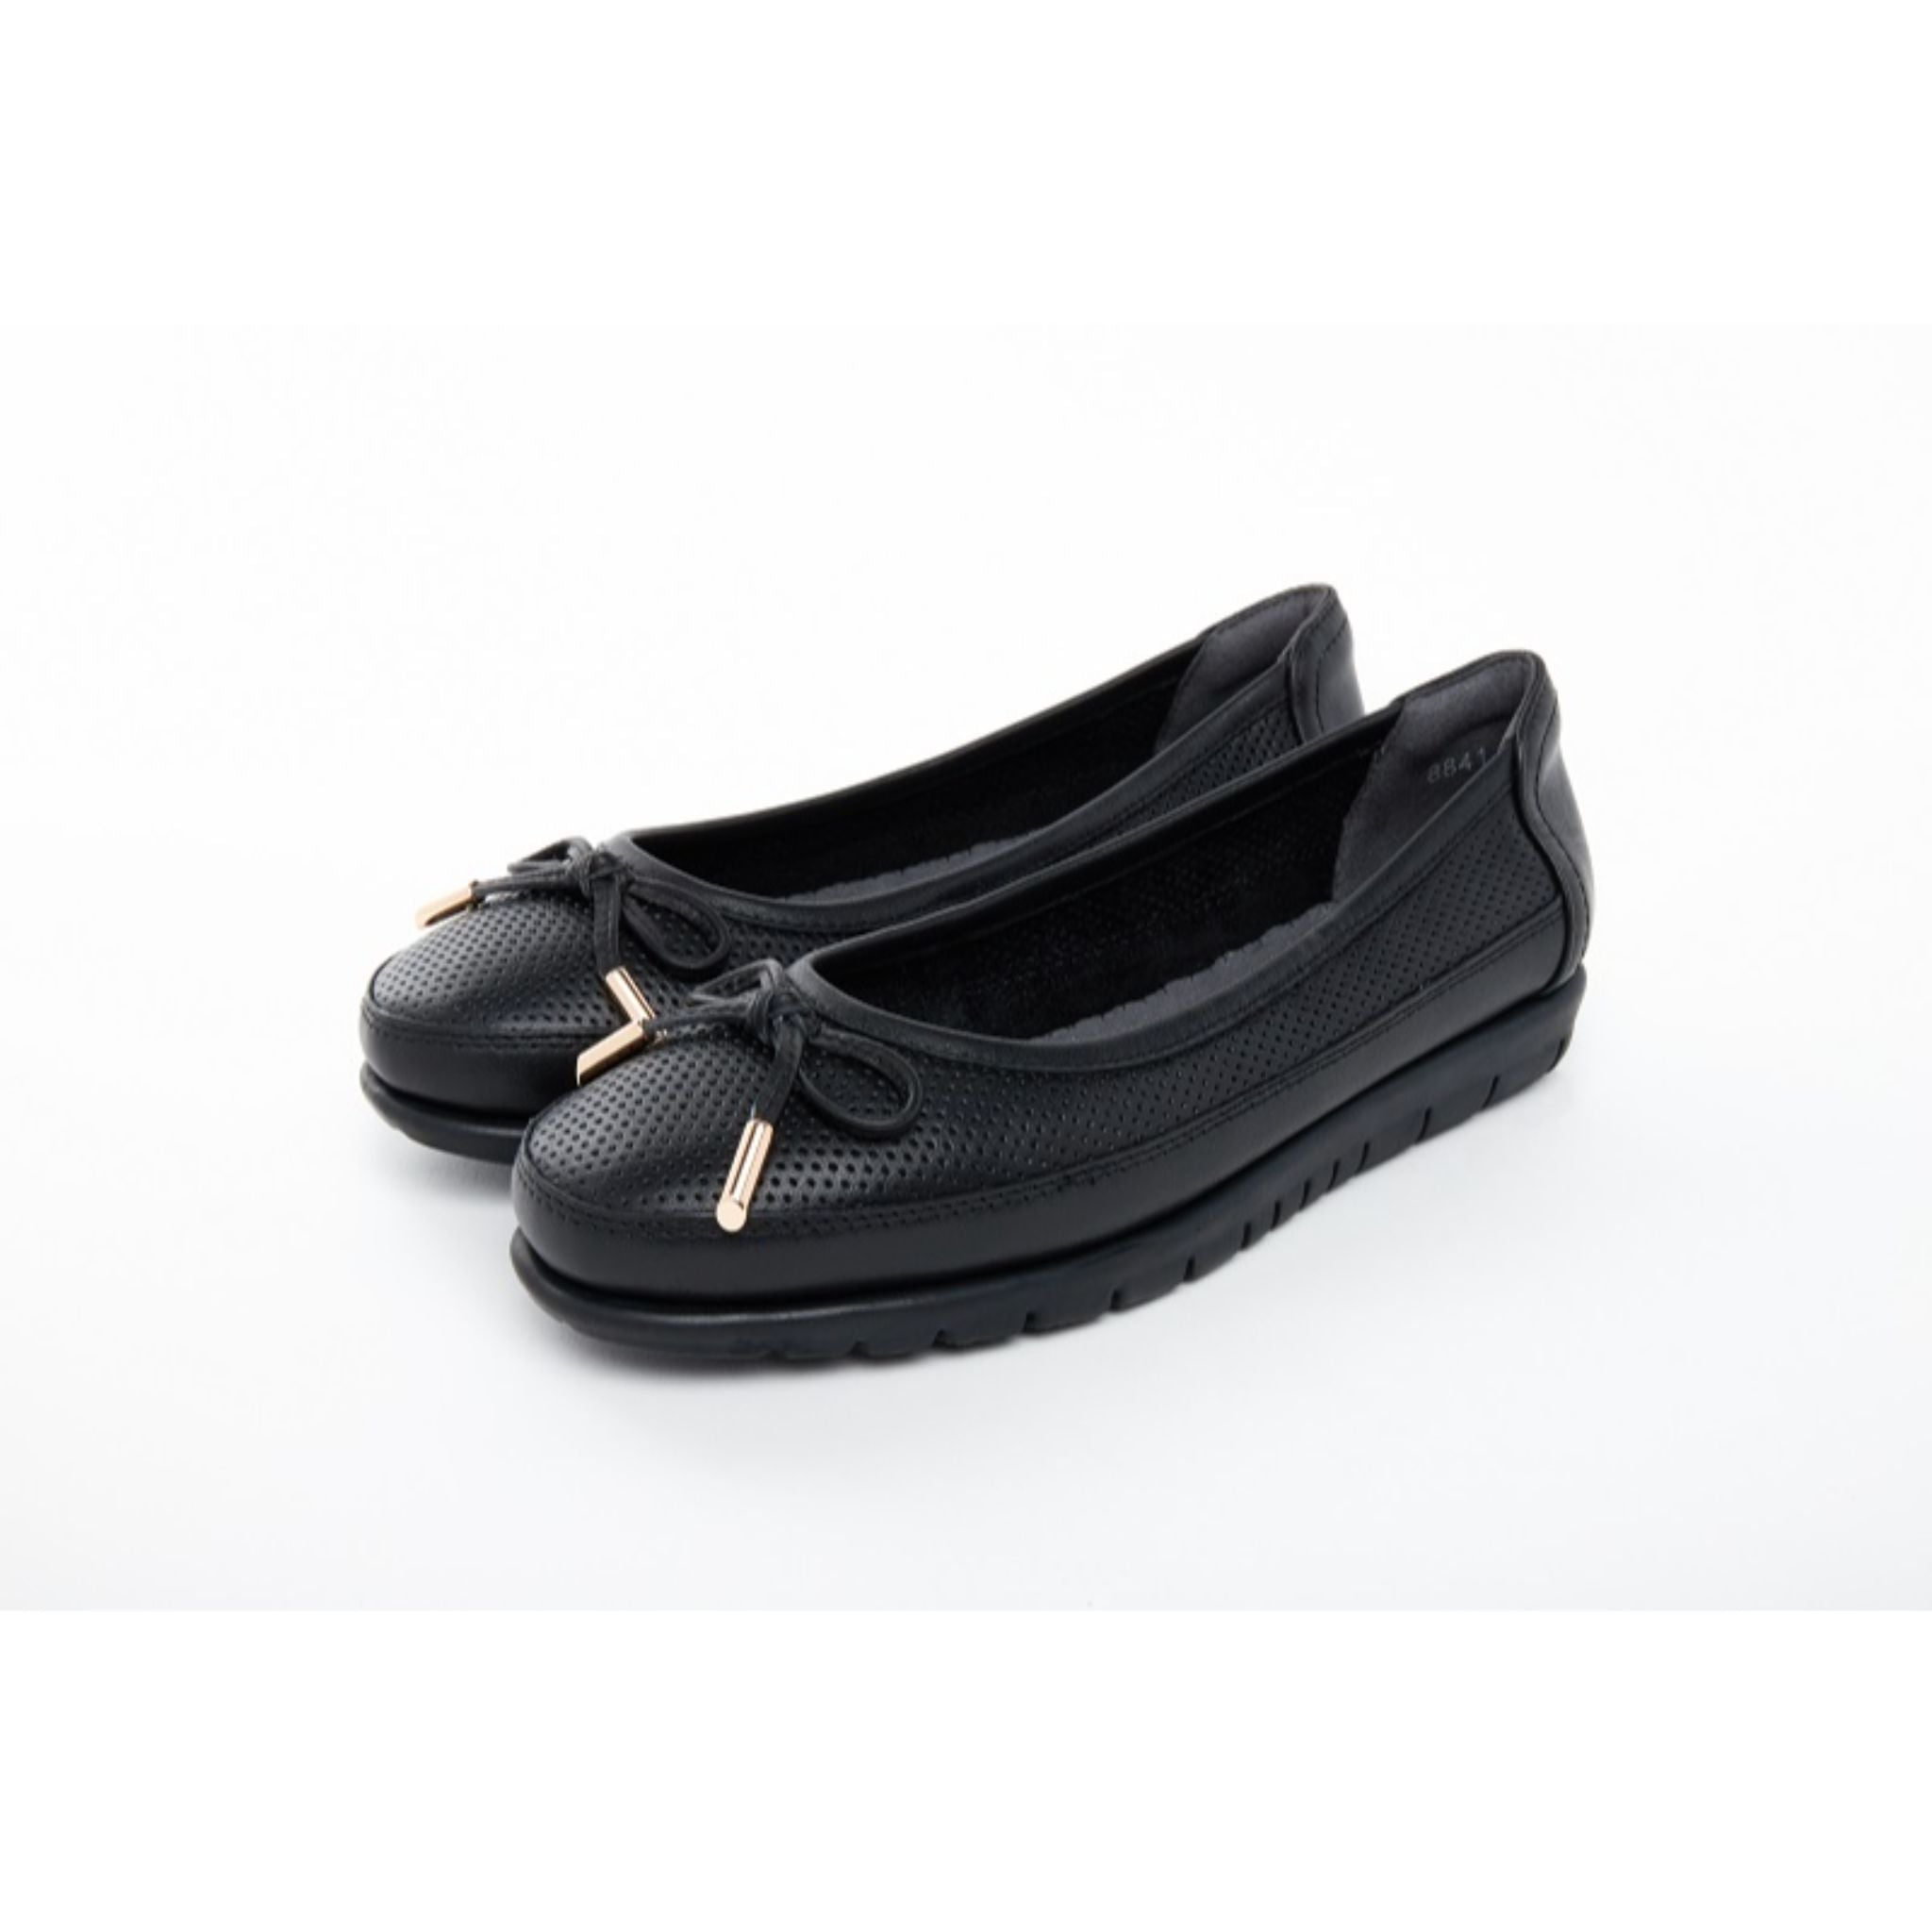 Barani Leather Pumps Ballet Flats With Fixed Bow 8841-141 Black